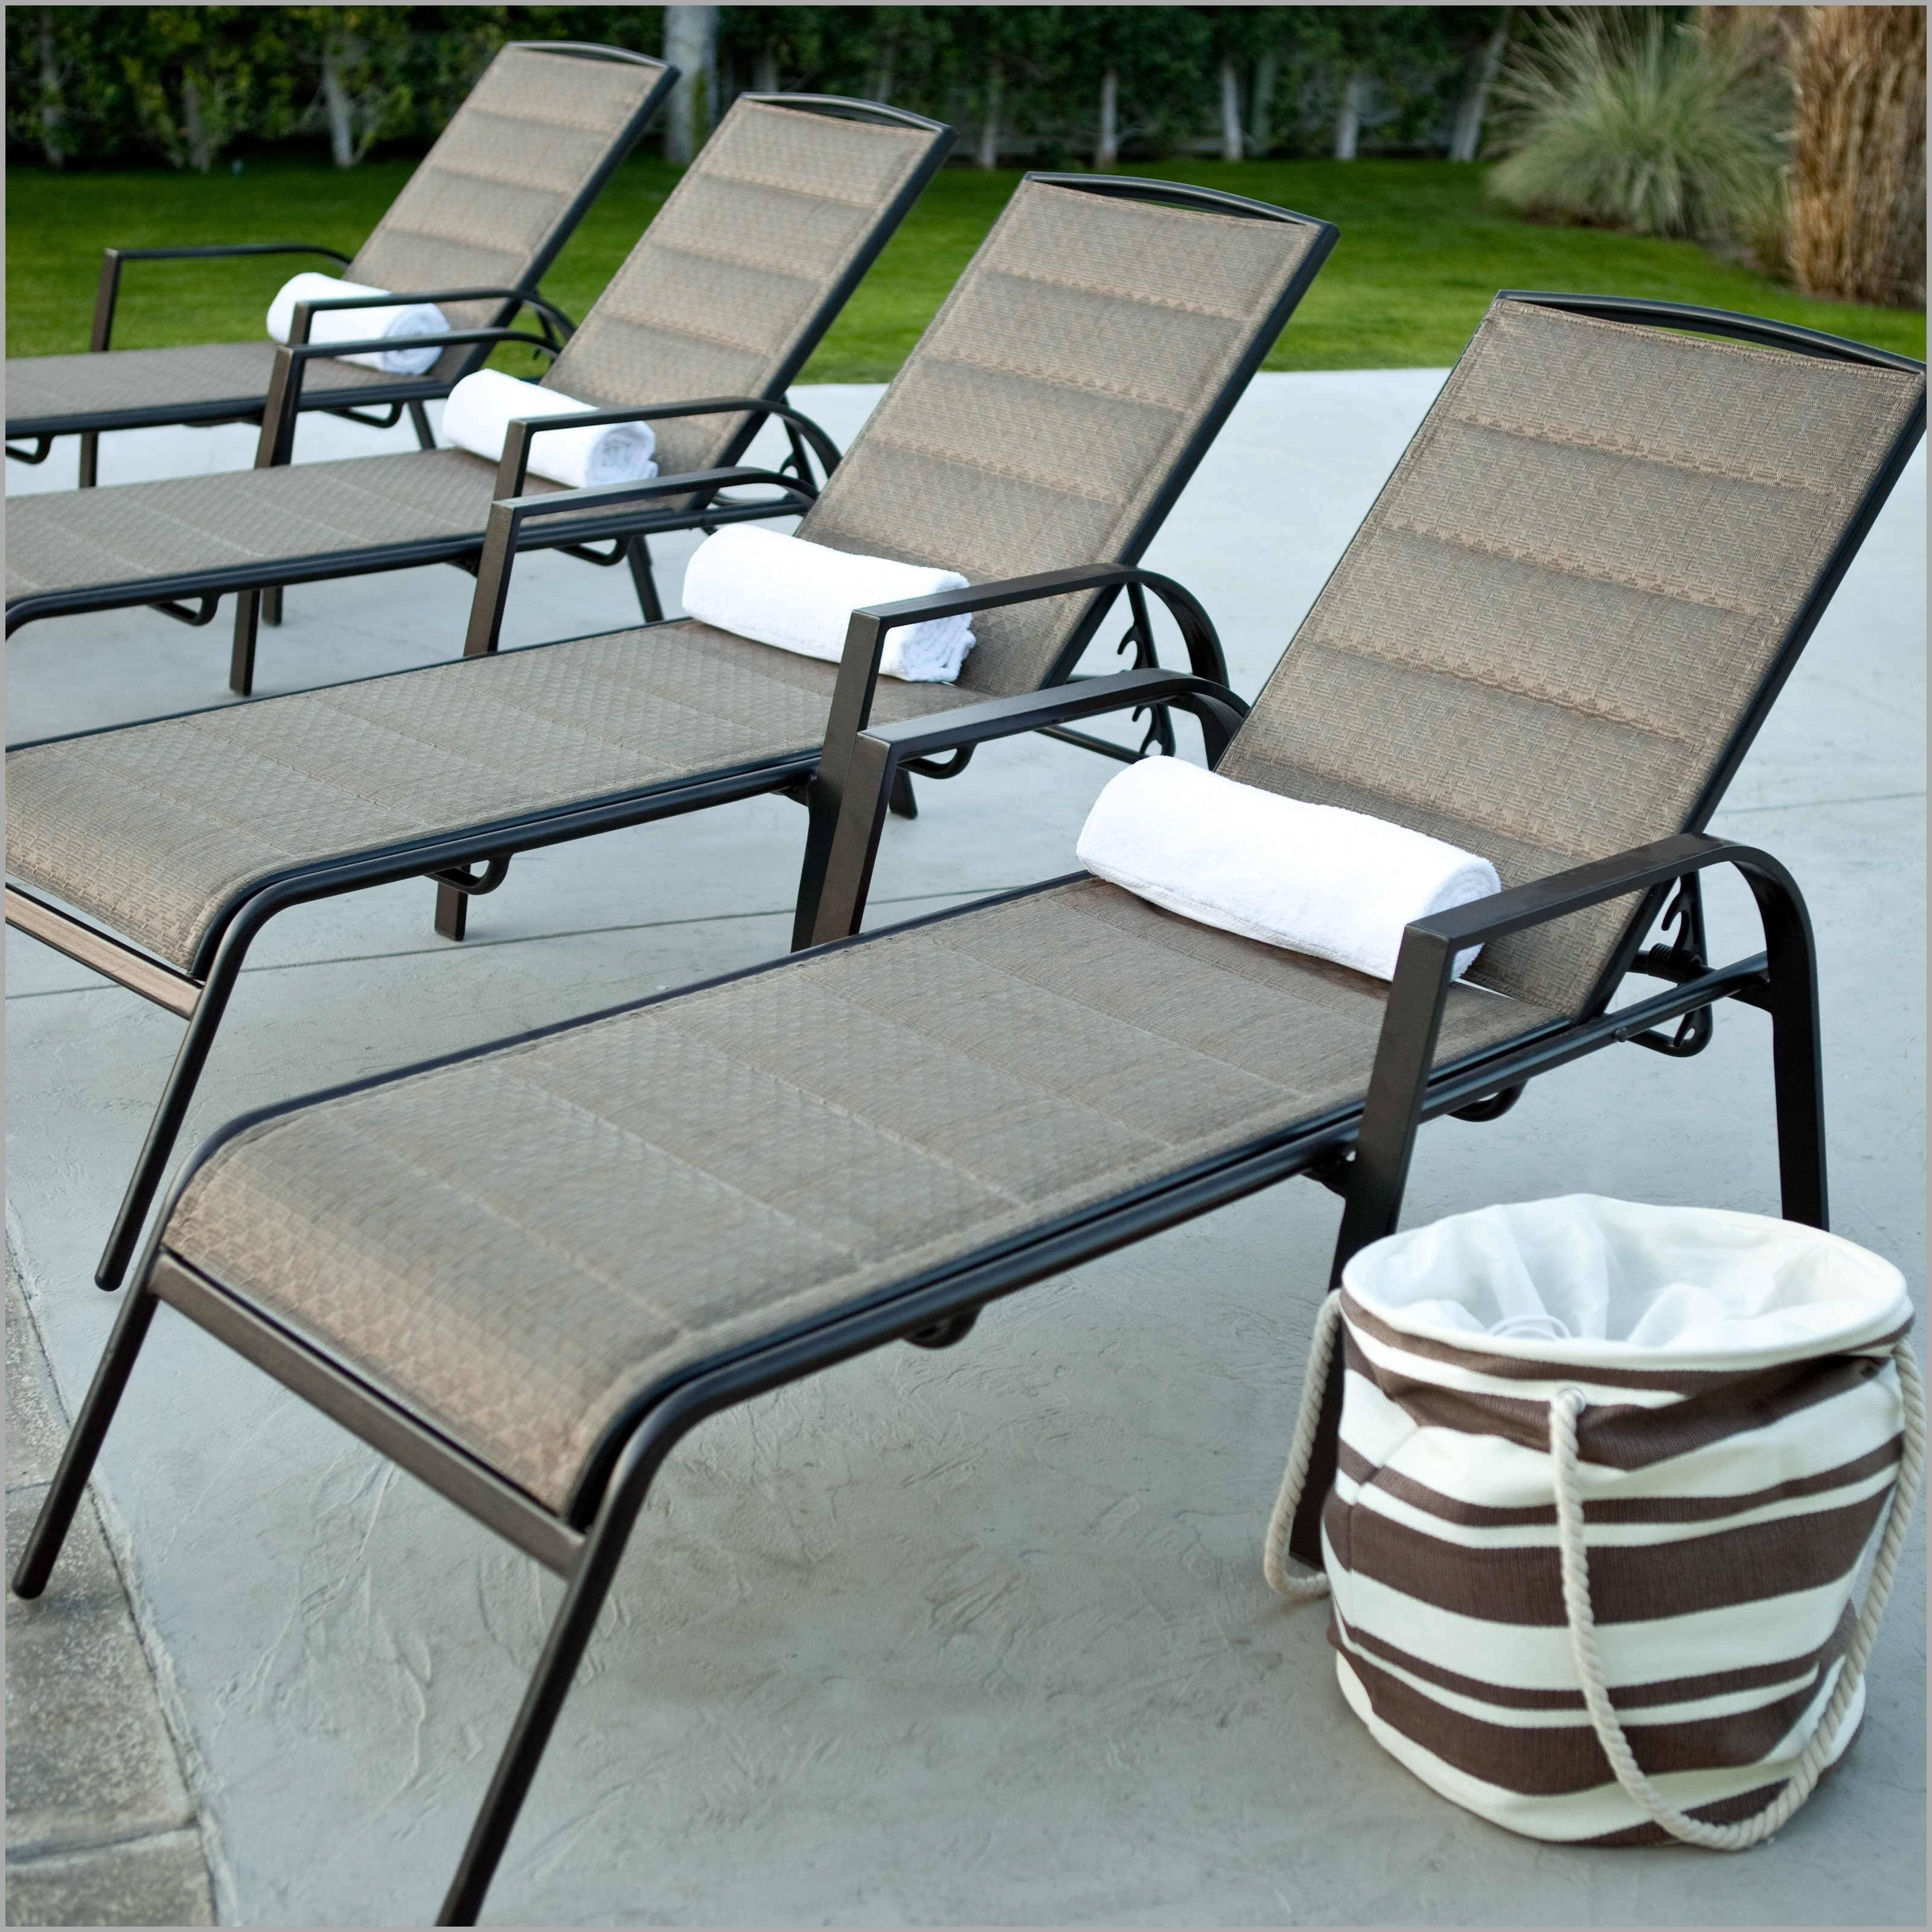 Extraordinary Pool Chaise Lounge Chairs Decorative 600357 – Chair Inside Well Known Martha Stewart Outdoor Chaise Lounge Chairs (View 2 of 15)